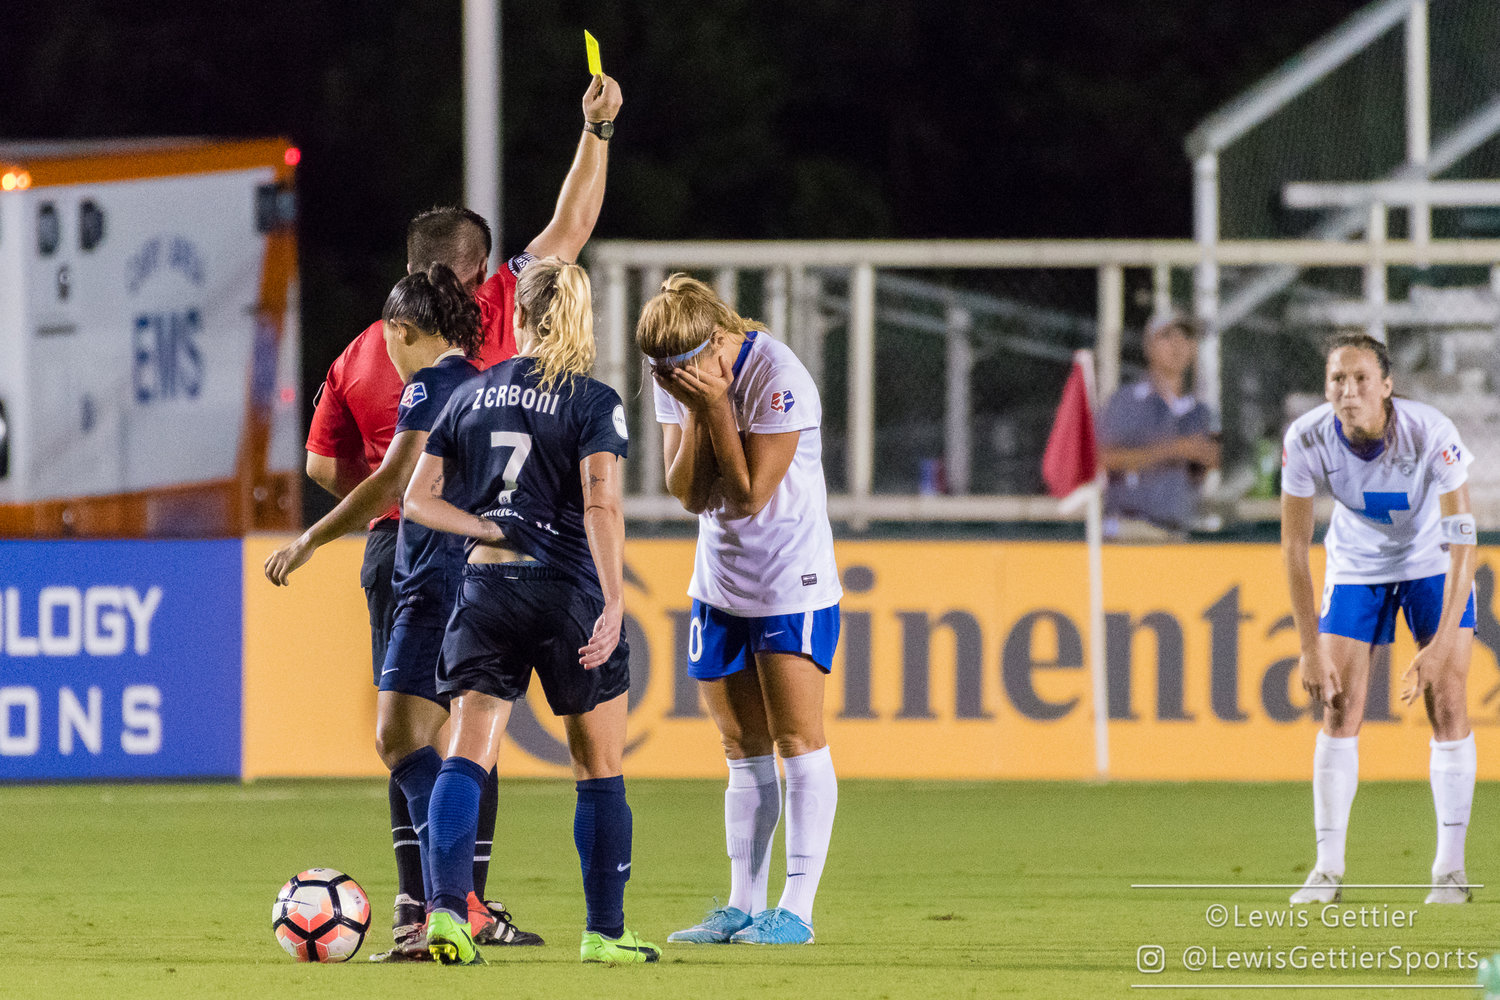 Rosie White can't look as she receives her 5th yellow card and with in an automatic, one-game suspension. )Photo by Lewis Gettier)